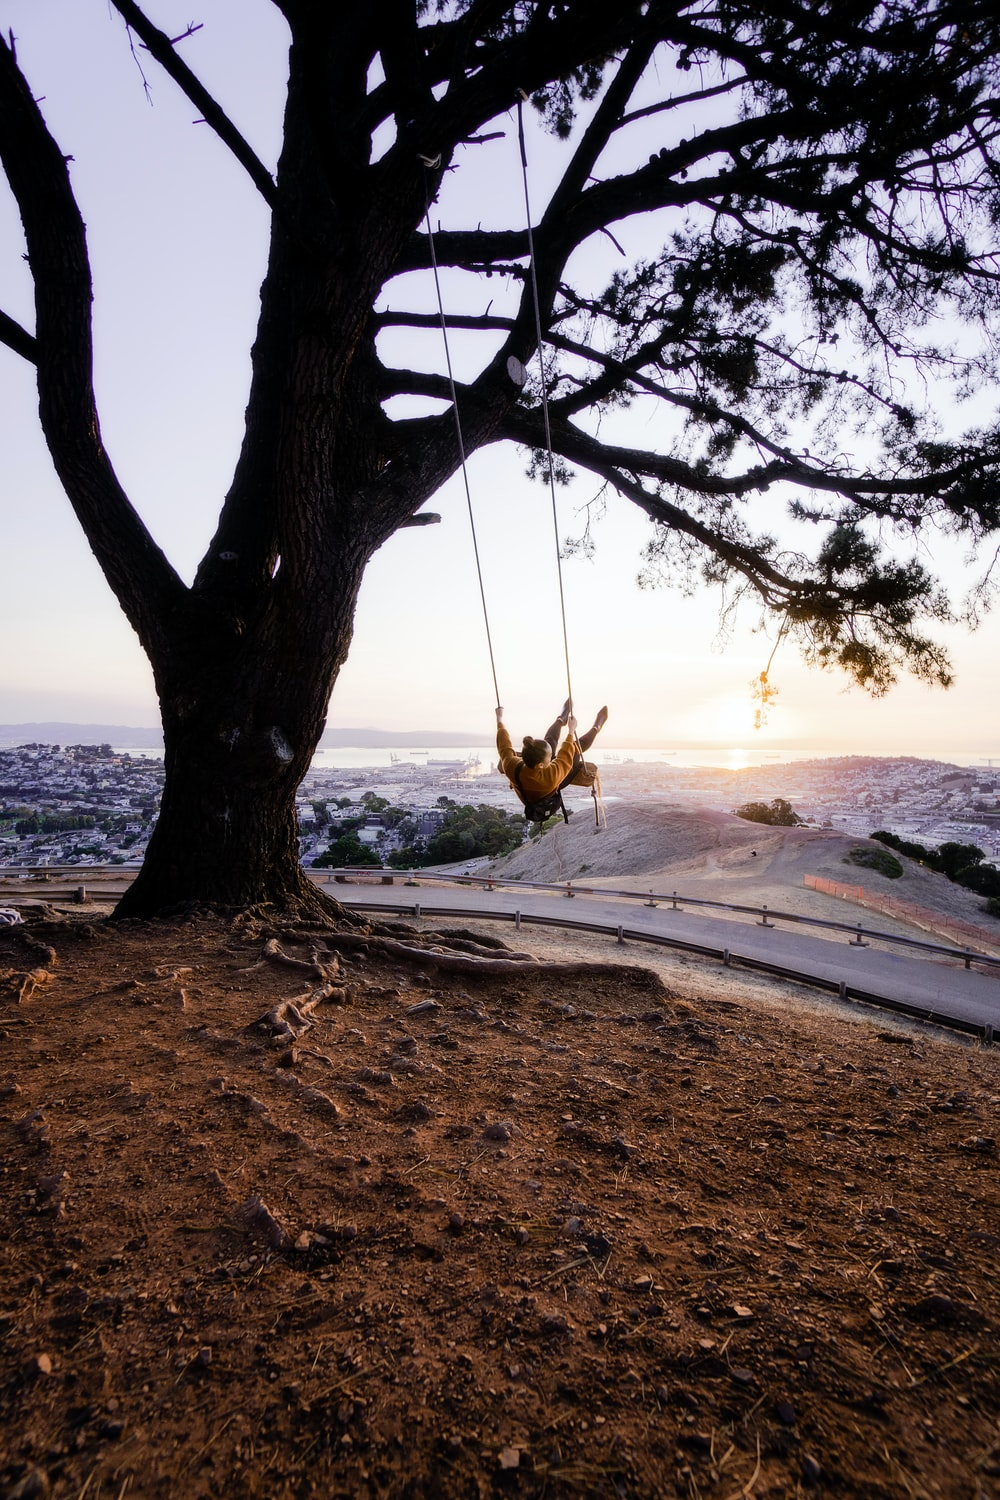 person sitting on swing